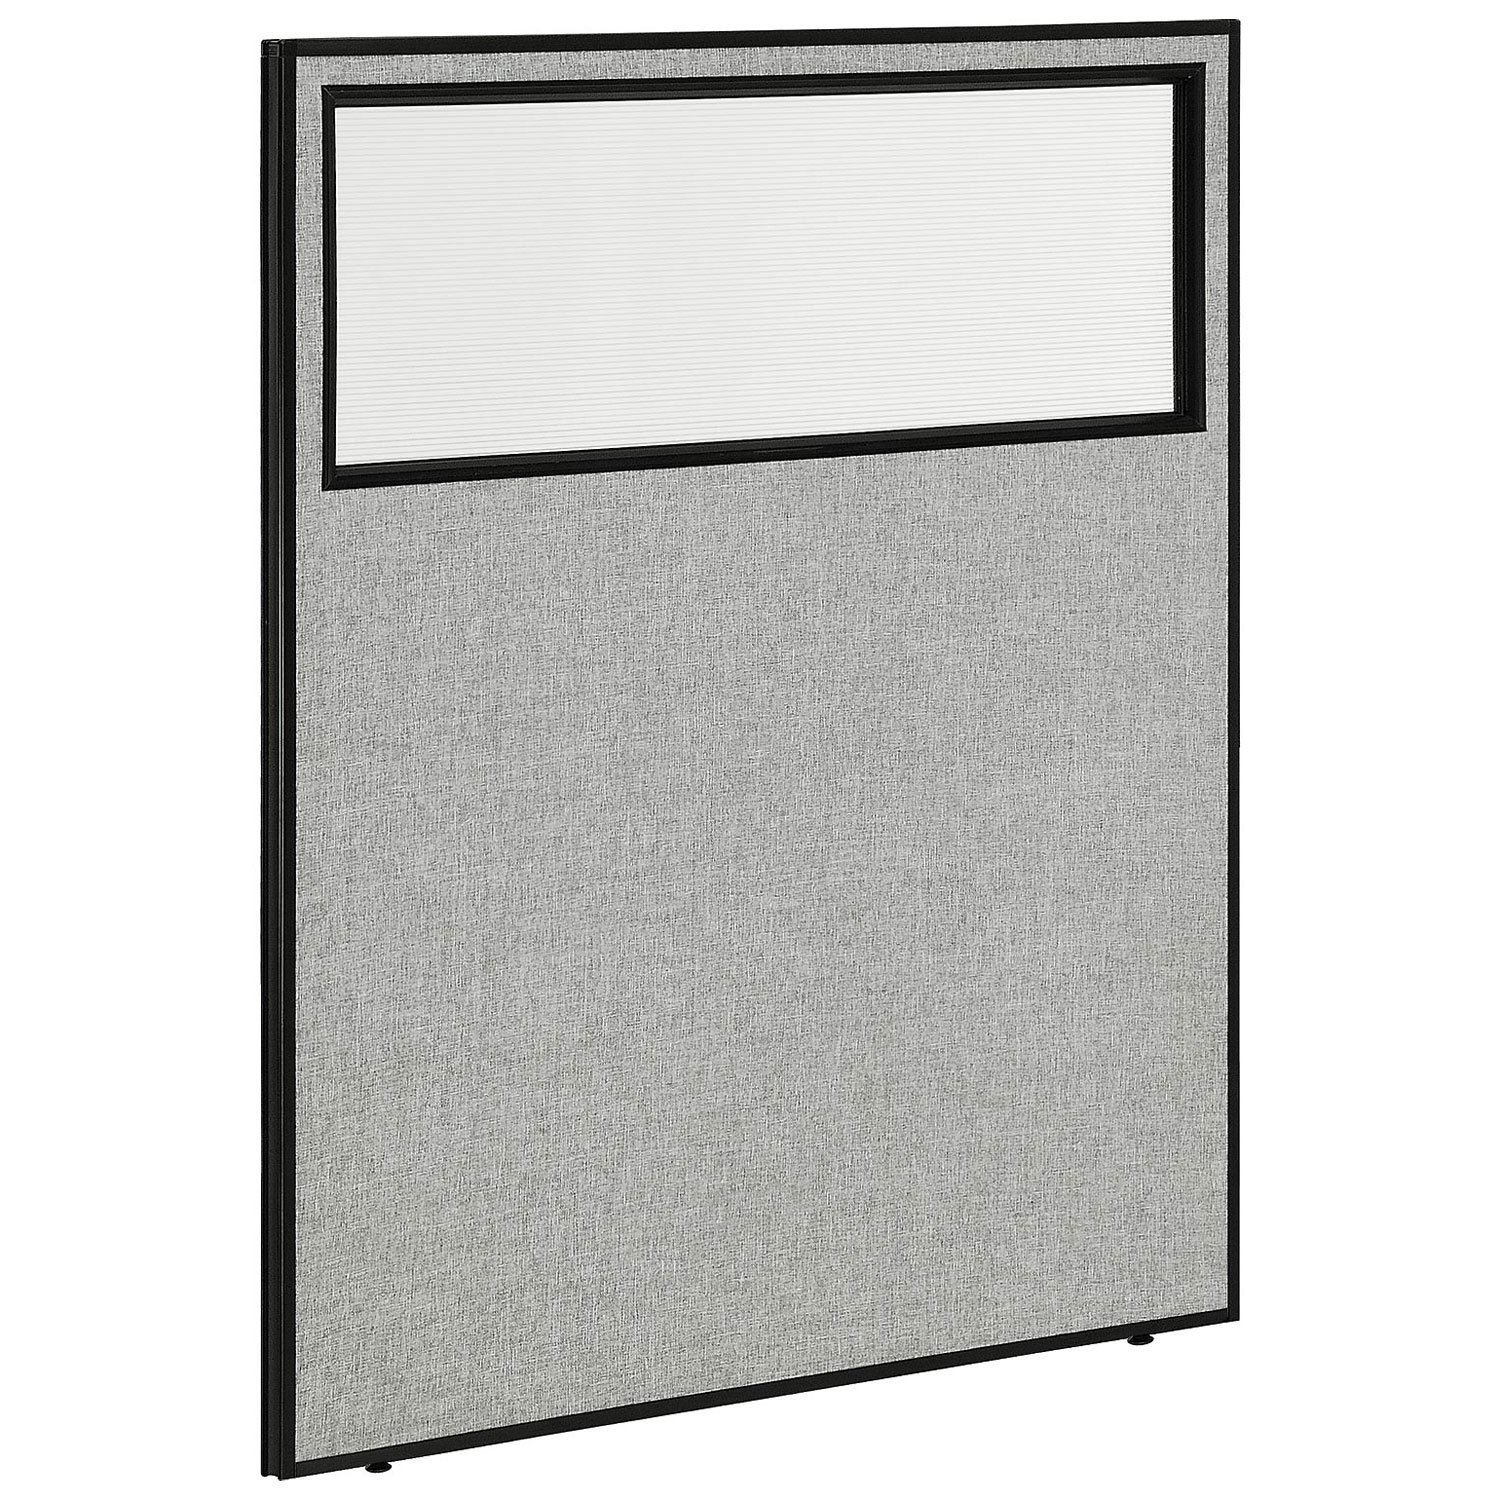 48-1/4''W x 60''H Office Partition Panel with Partial Window, Gray